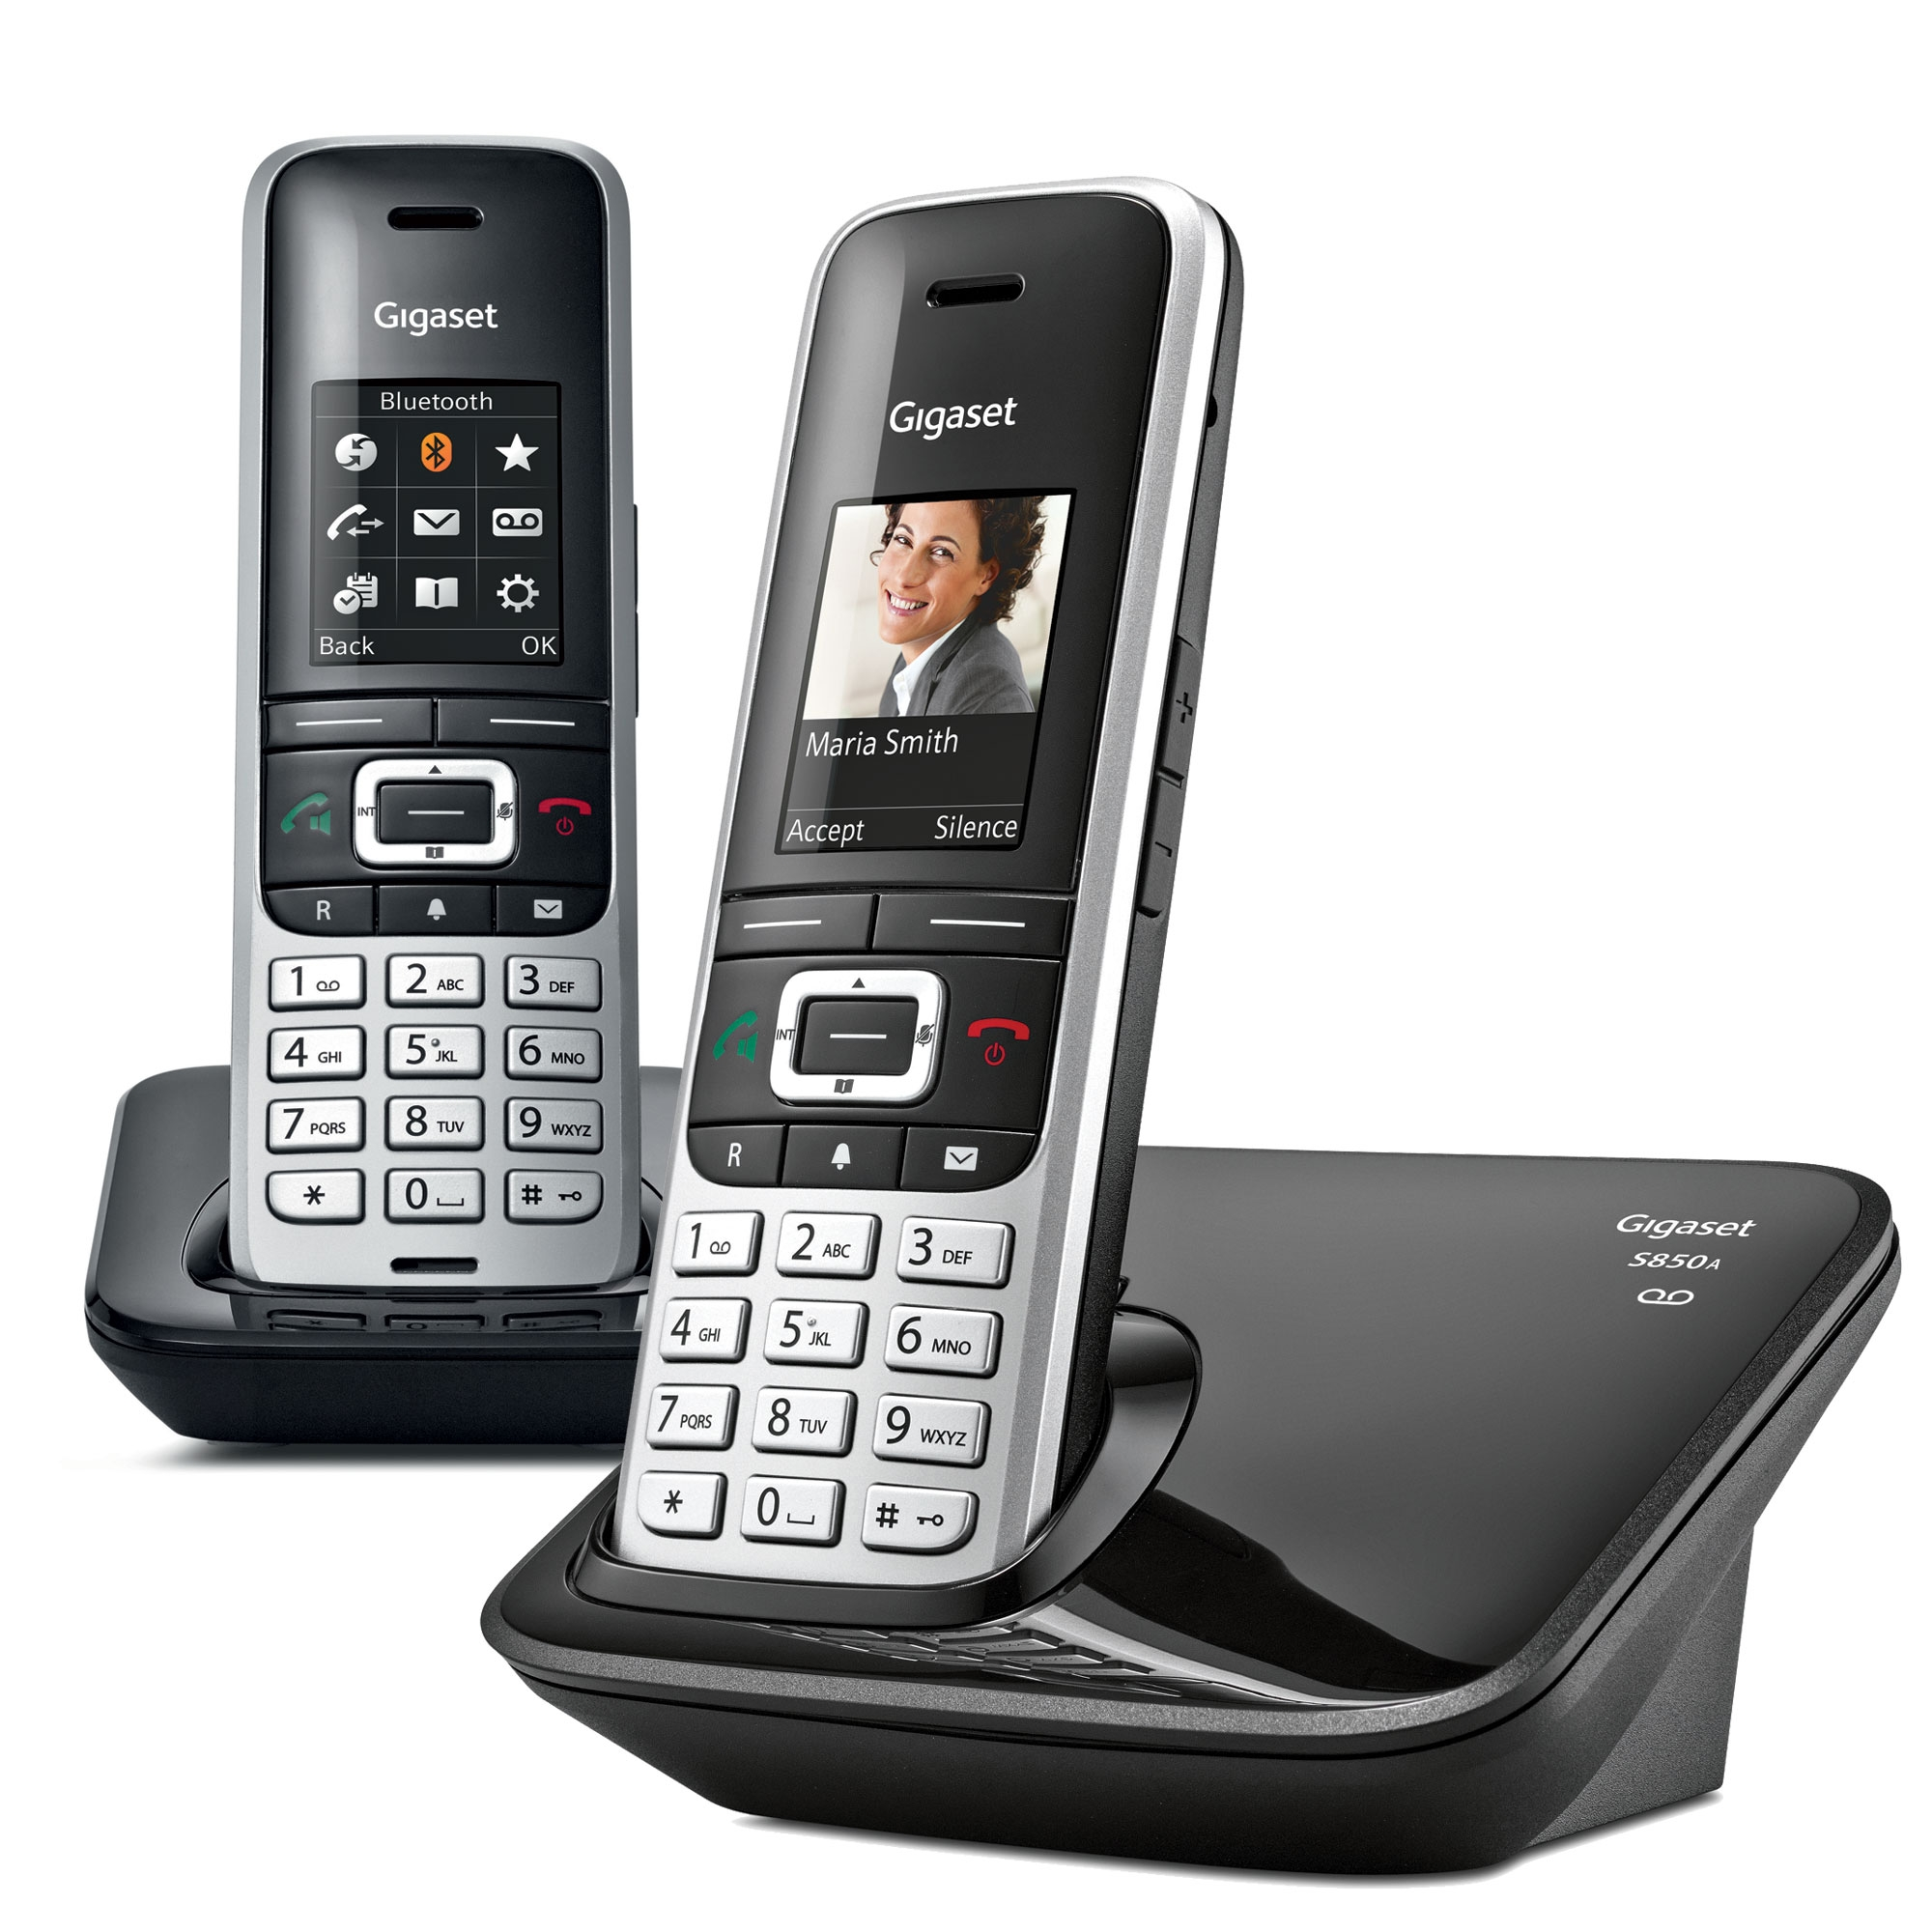 Image of Siemens Gigaset Premium S850A Cordless Phone, Twin Handset with Answer Machine